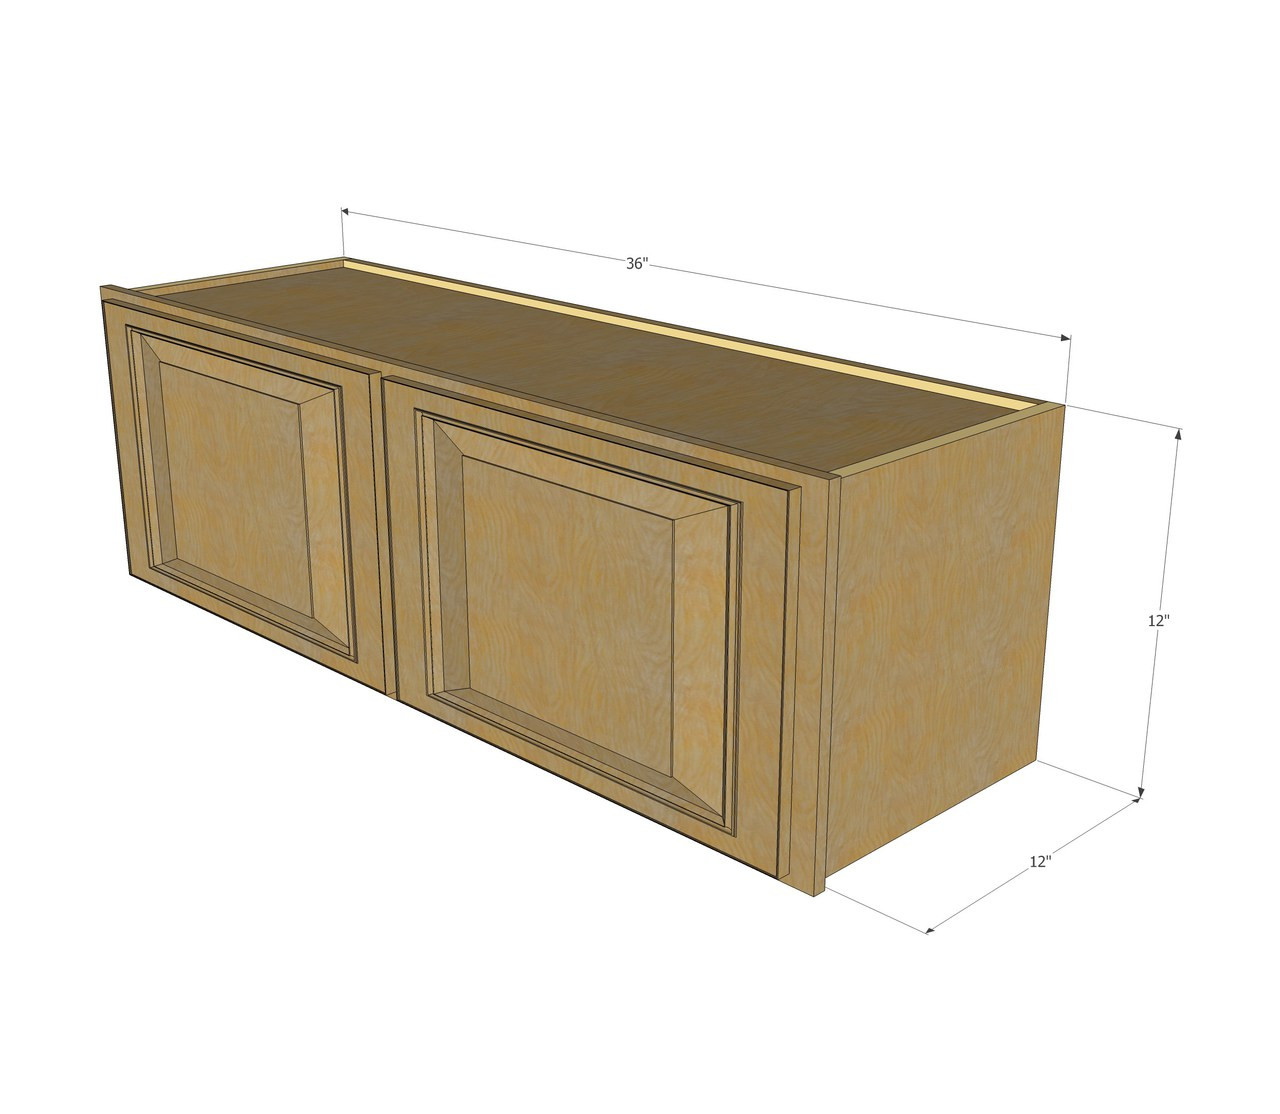 Regal oak horizontal overhead wall cabinet 36 inch wide for Kitchen cabinets 10 x 12